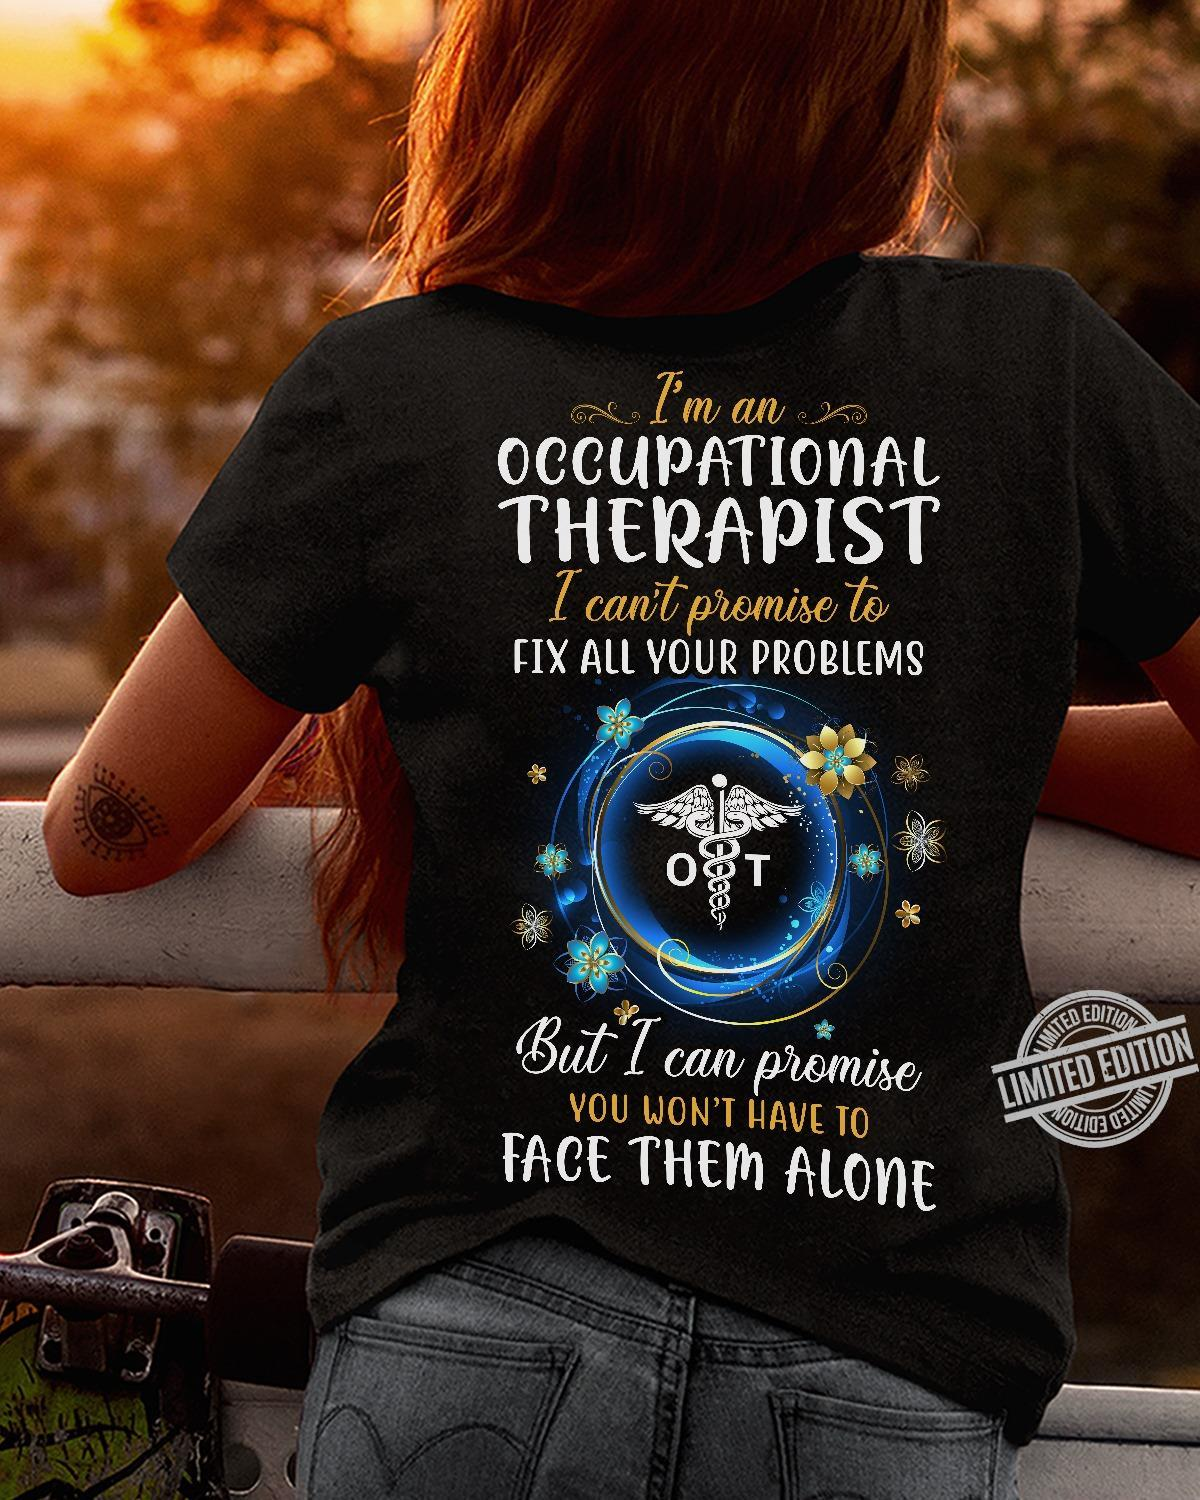 I'm An Occupational Therapist I Can't Promise To Fix All Your Problems But I Can Promise Face Them Alone Shirt